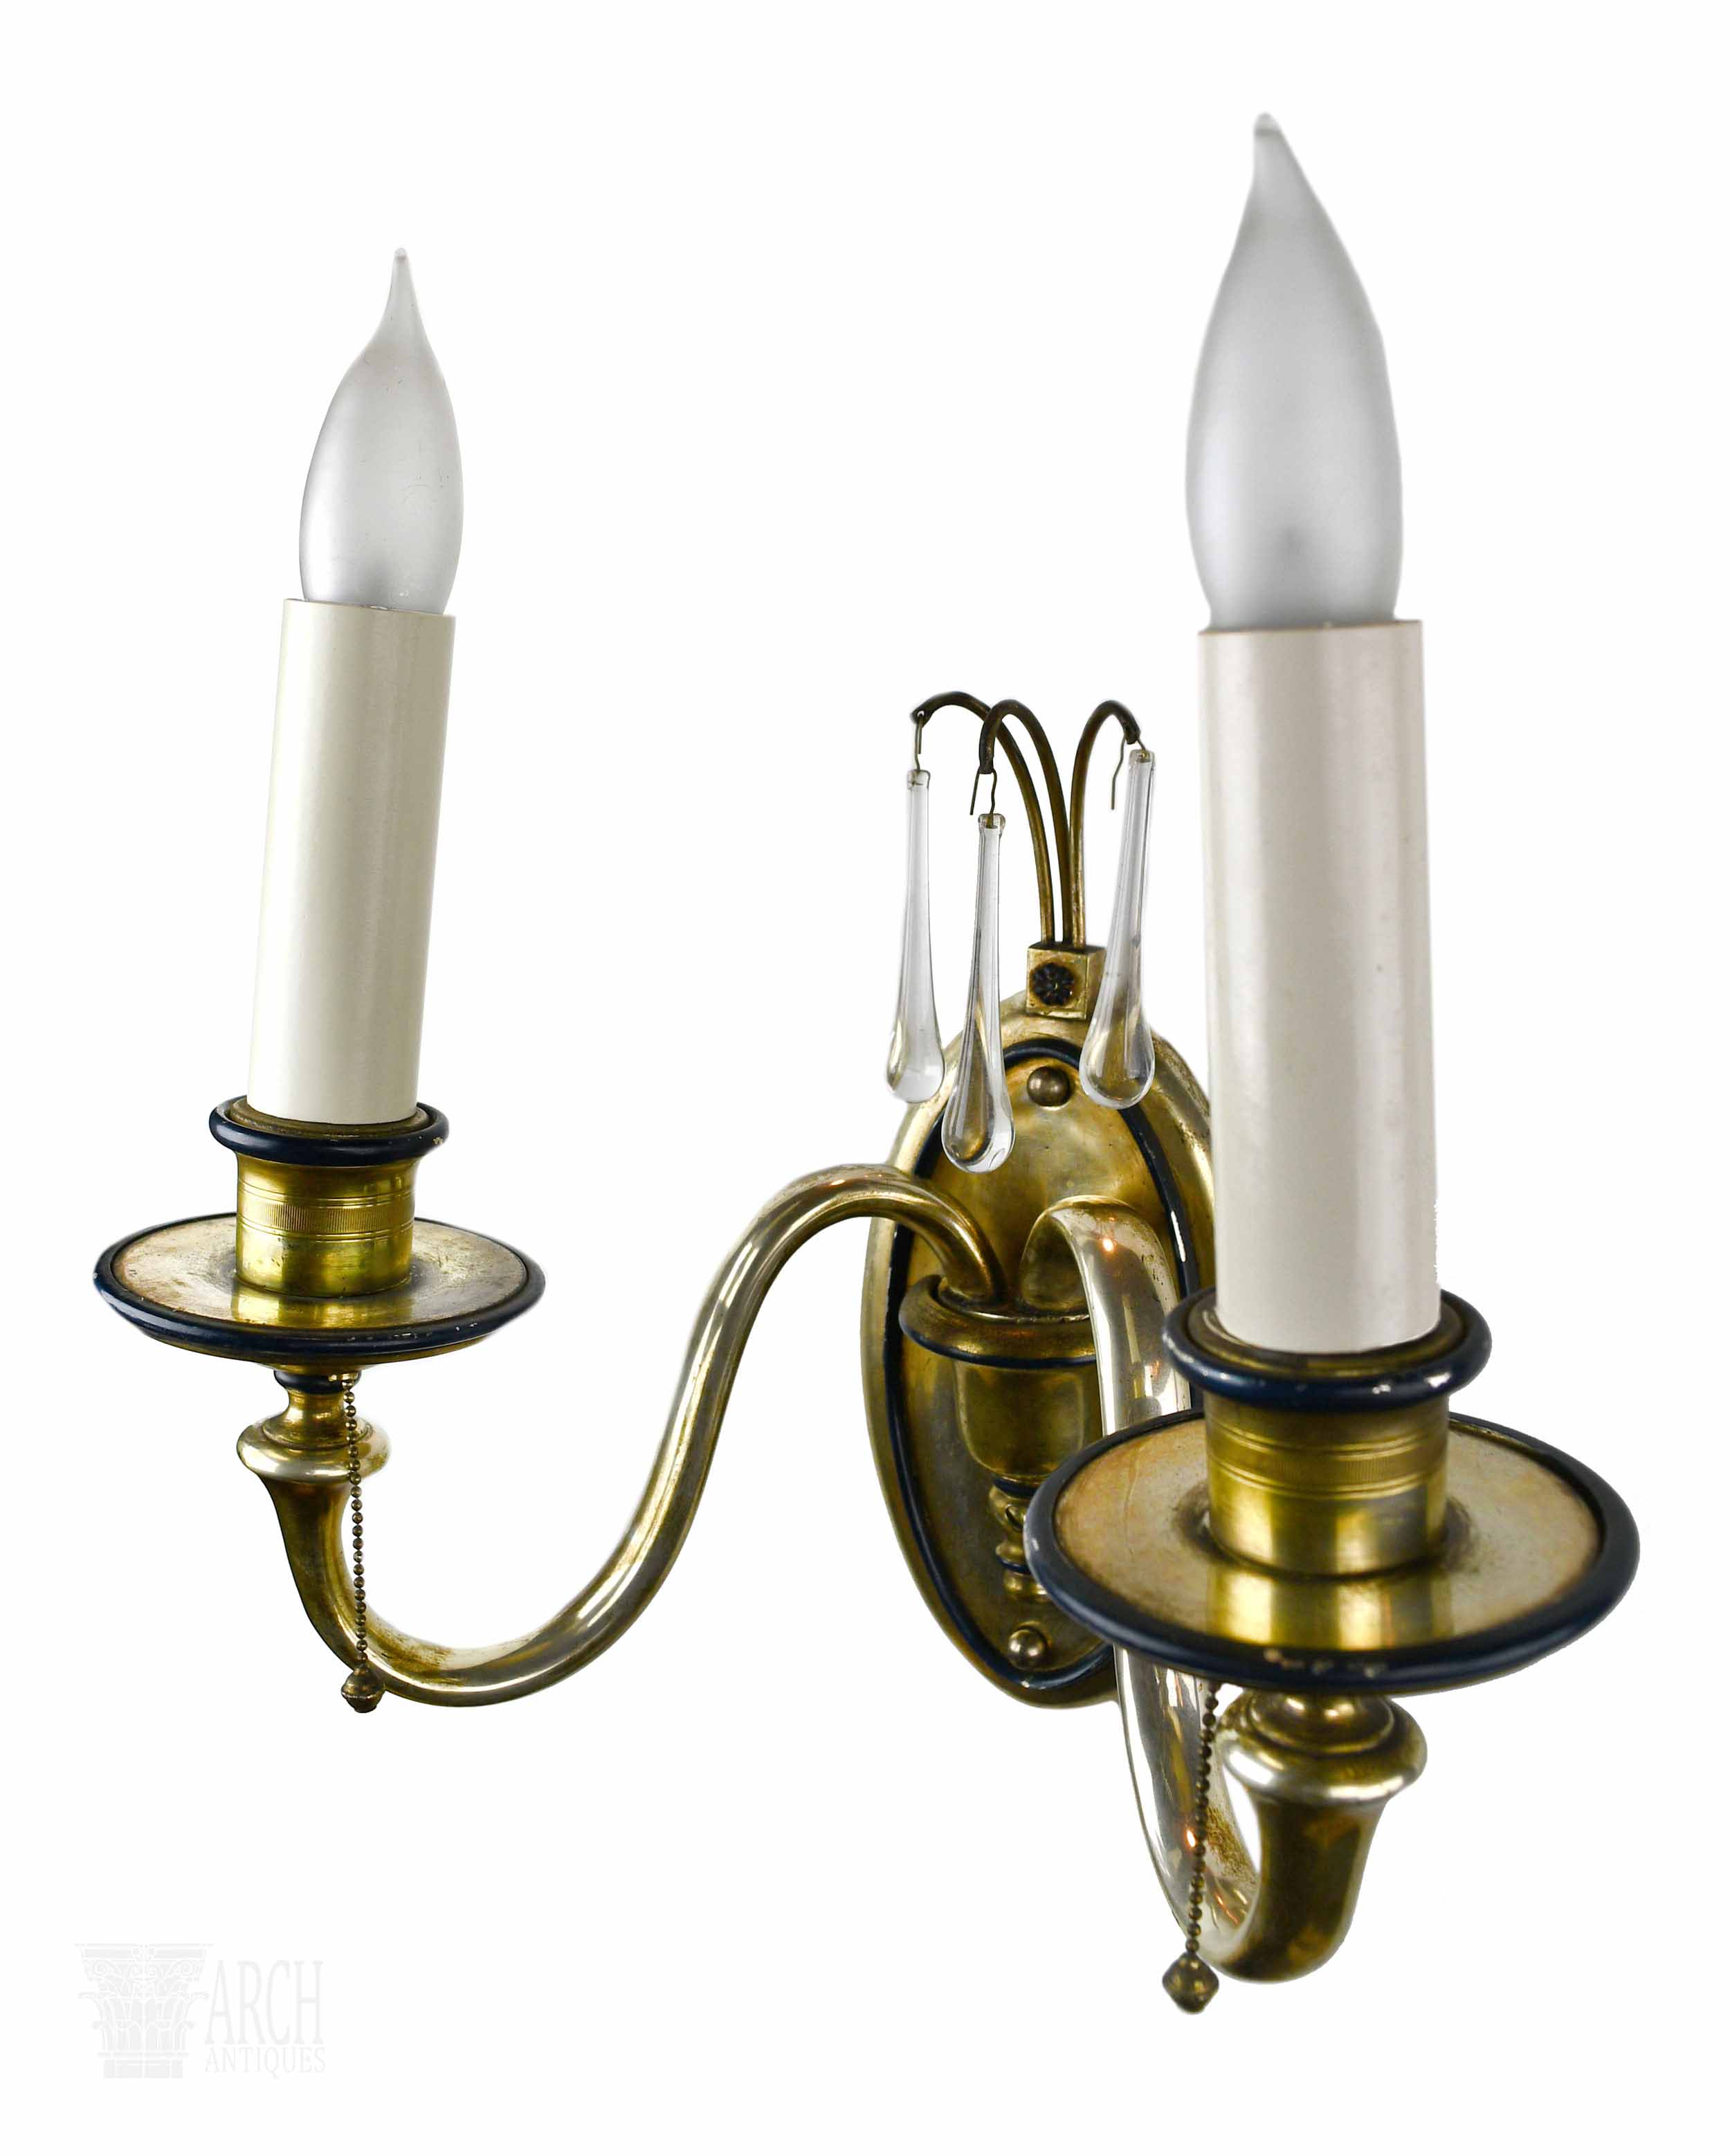 48450-silver sconce with crystal-2.jpg